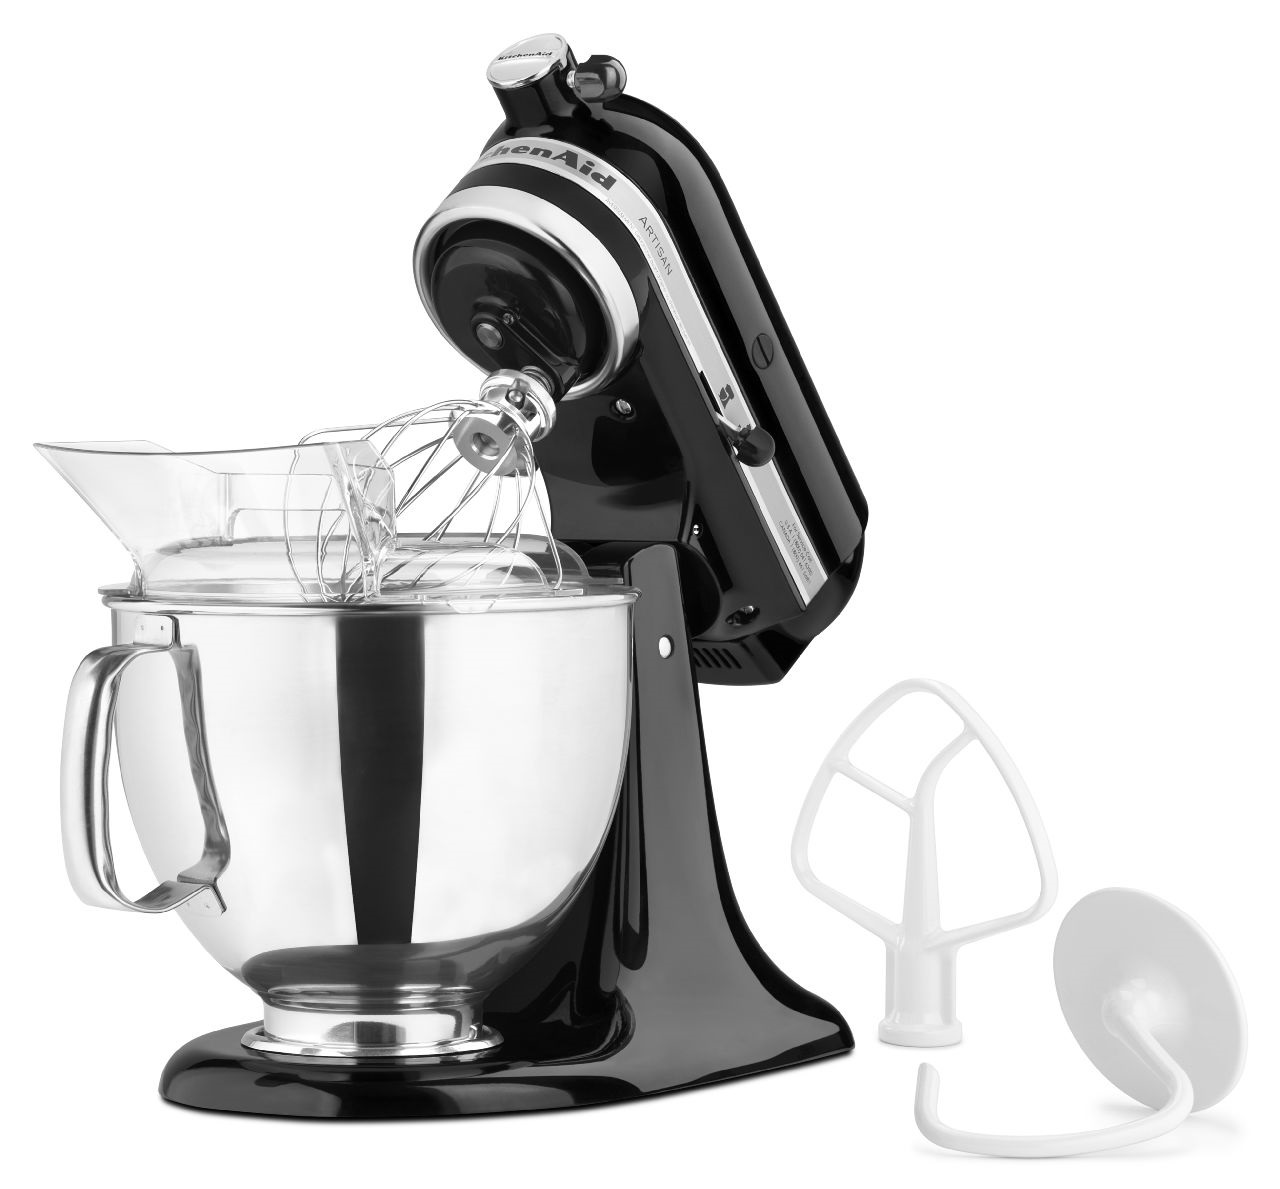 KitchenAid-Refurbished-Artisan-Series-5-Quart-Tilt-Head-Stand-Mixer-RRK150 thumbnail 70